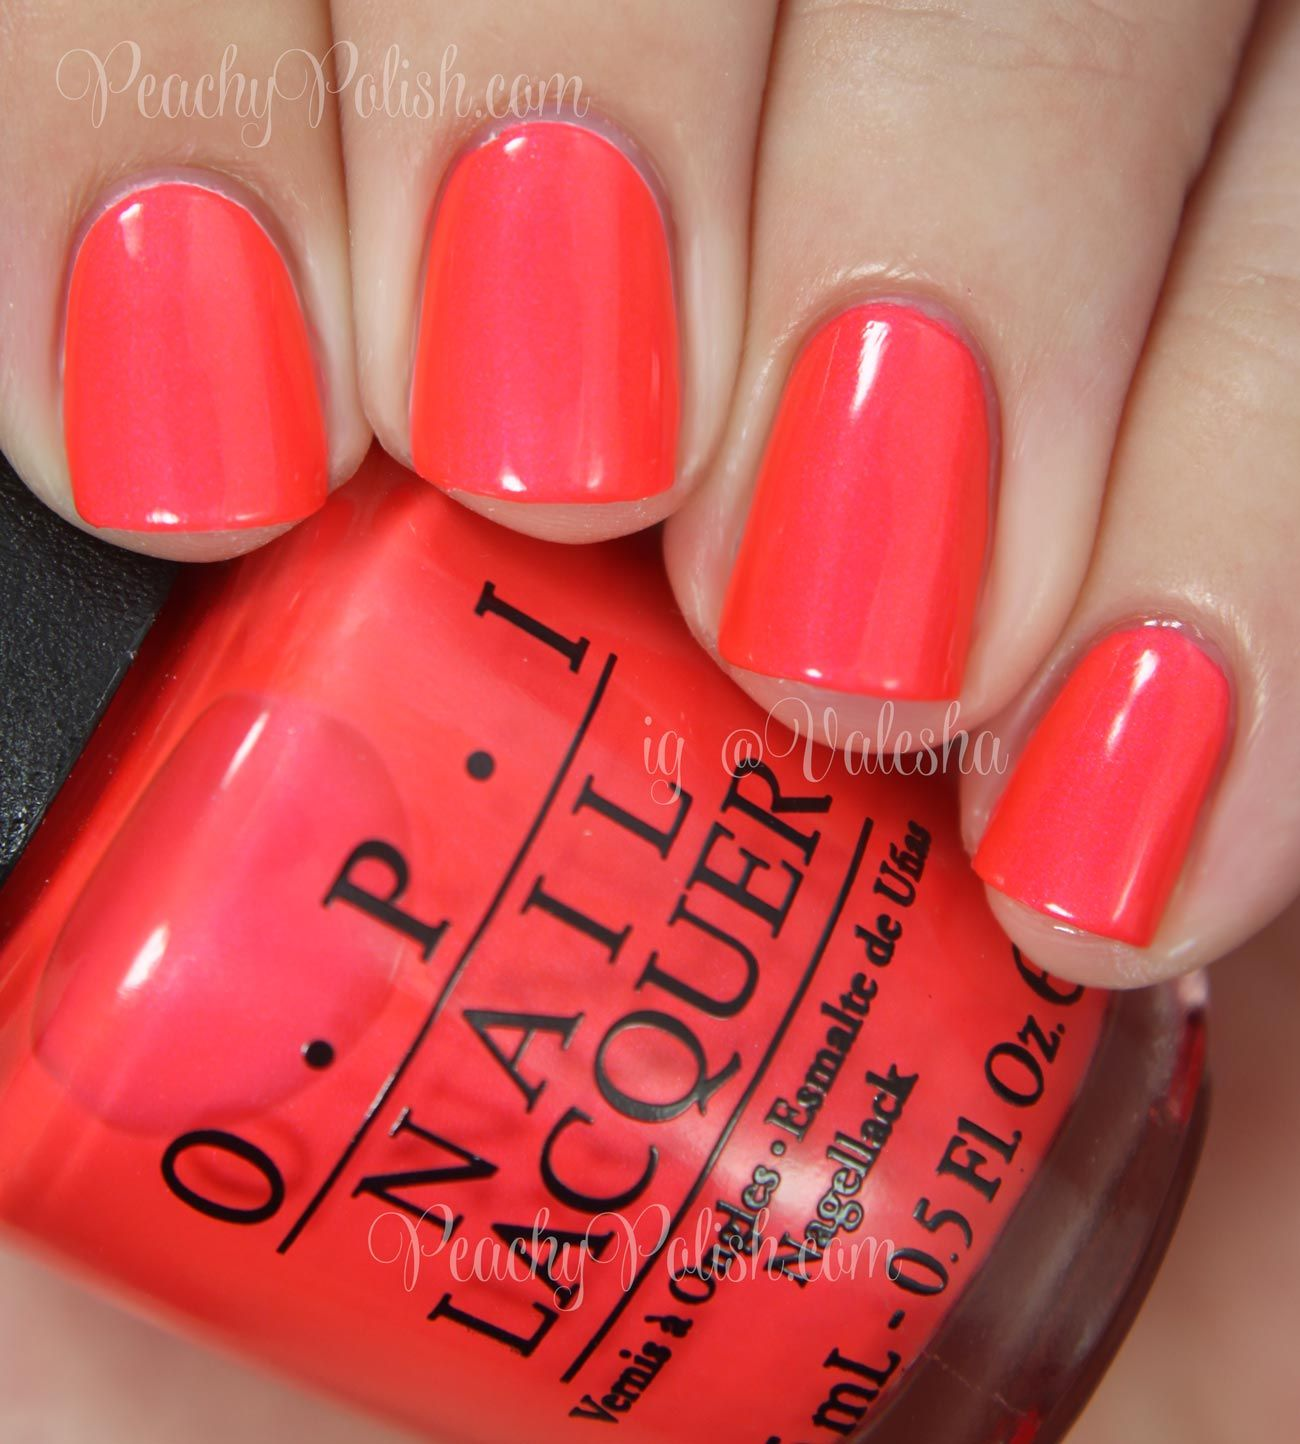 Opi Summer 2014 Neon Collection Swatches Review Neon Coral